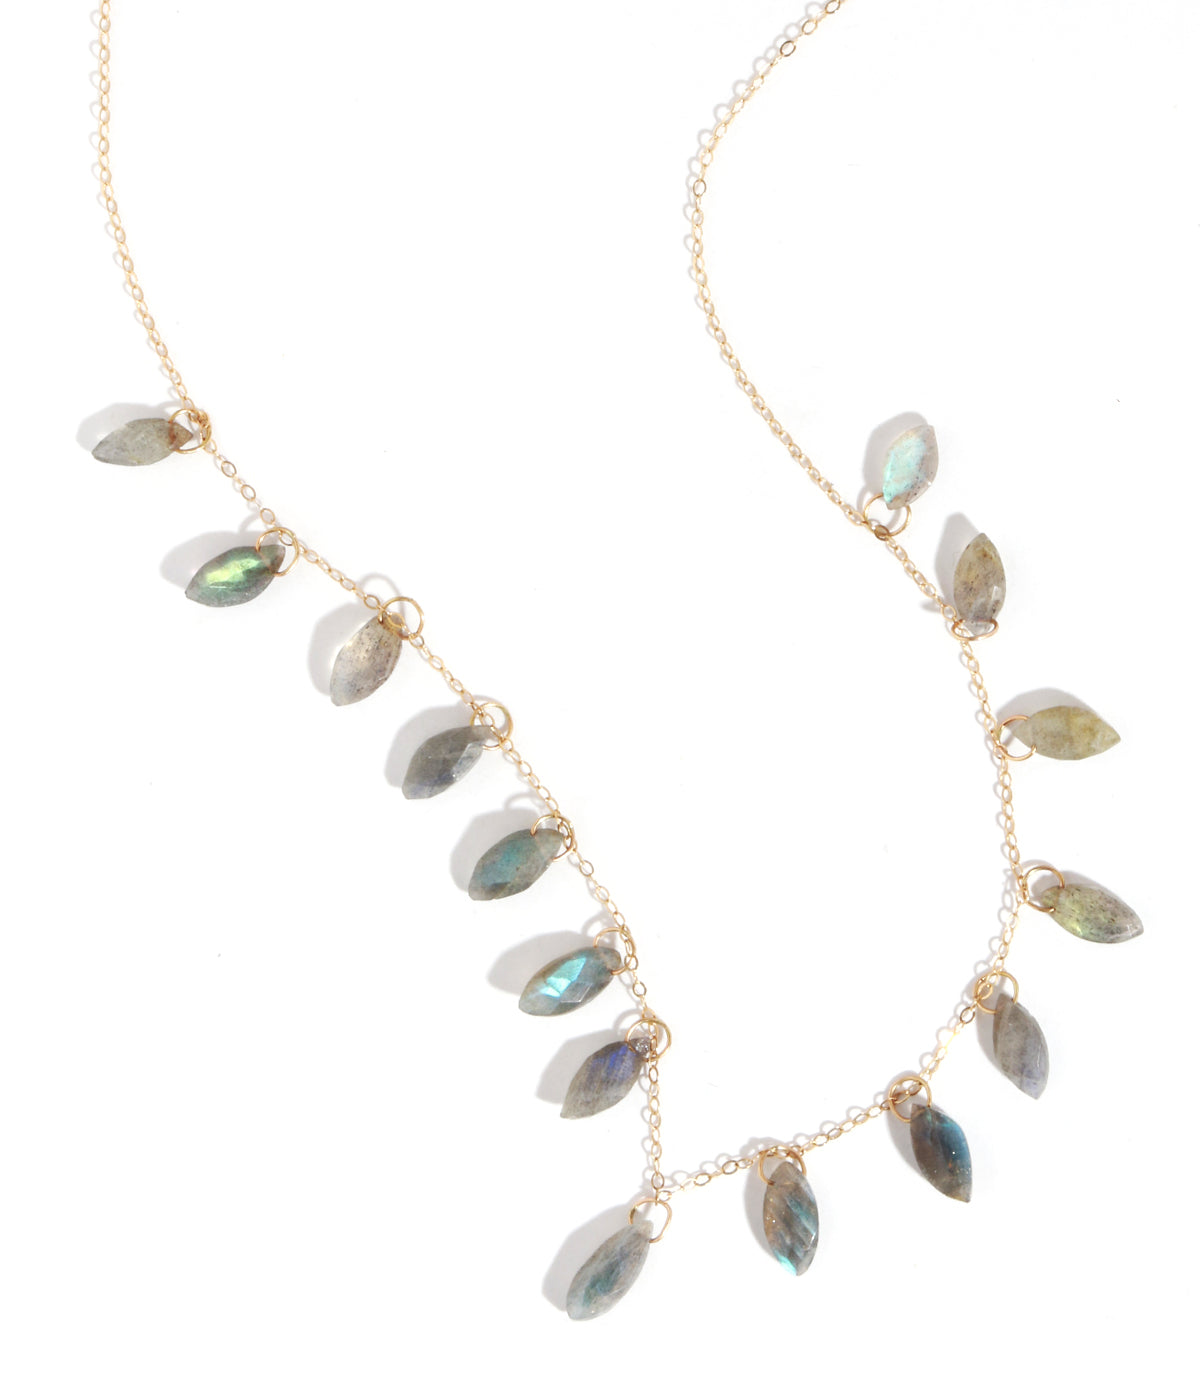 so in trapped silver aurora labradorite rocks and freed necklace tells us until the product borealis legend sterling